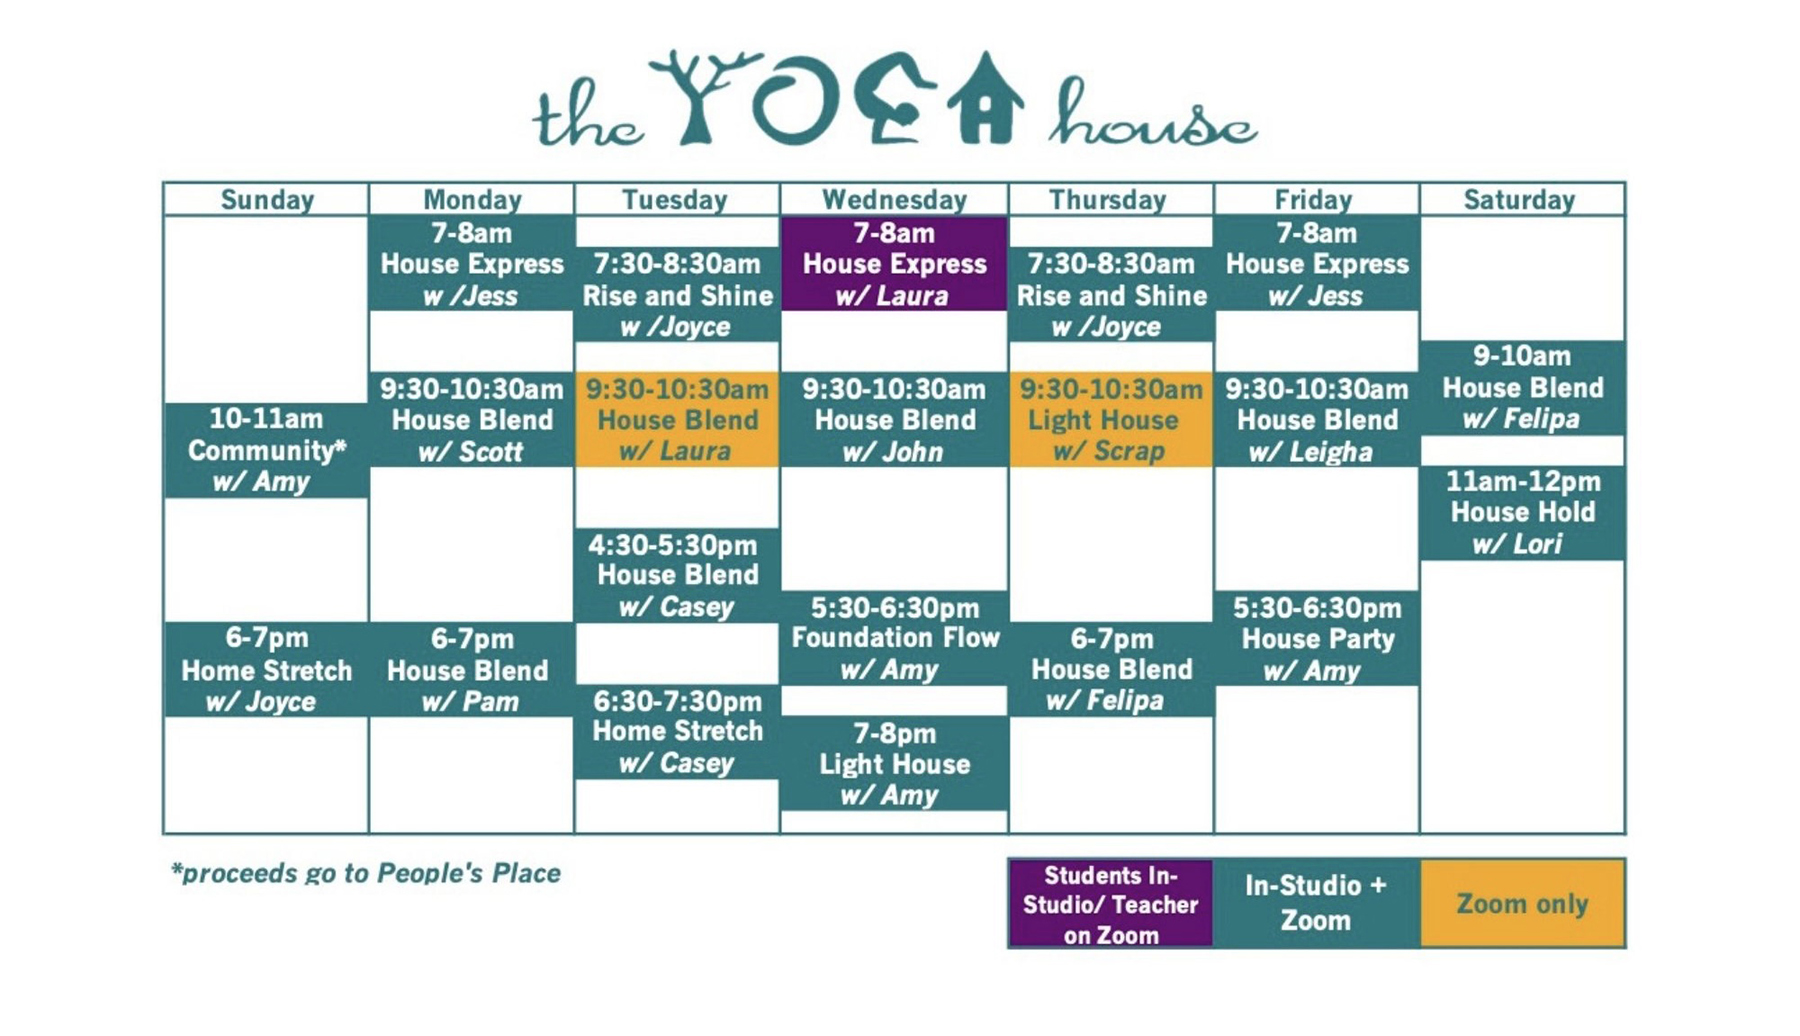 The schedule of classes in text for the yoga house